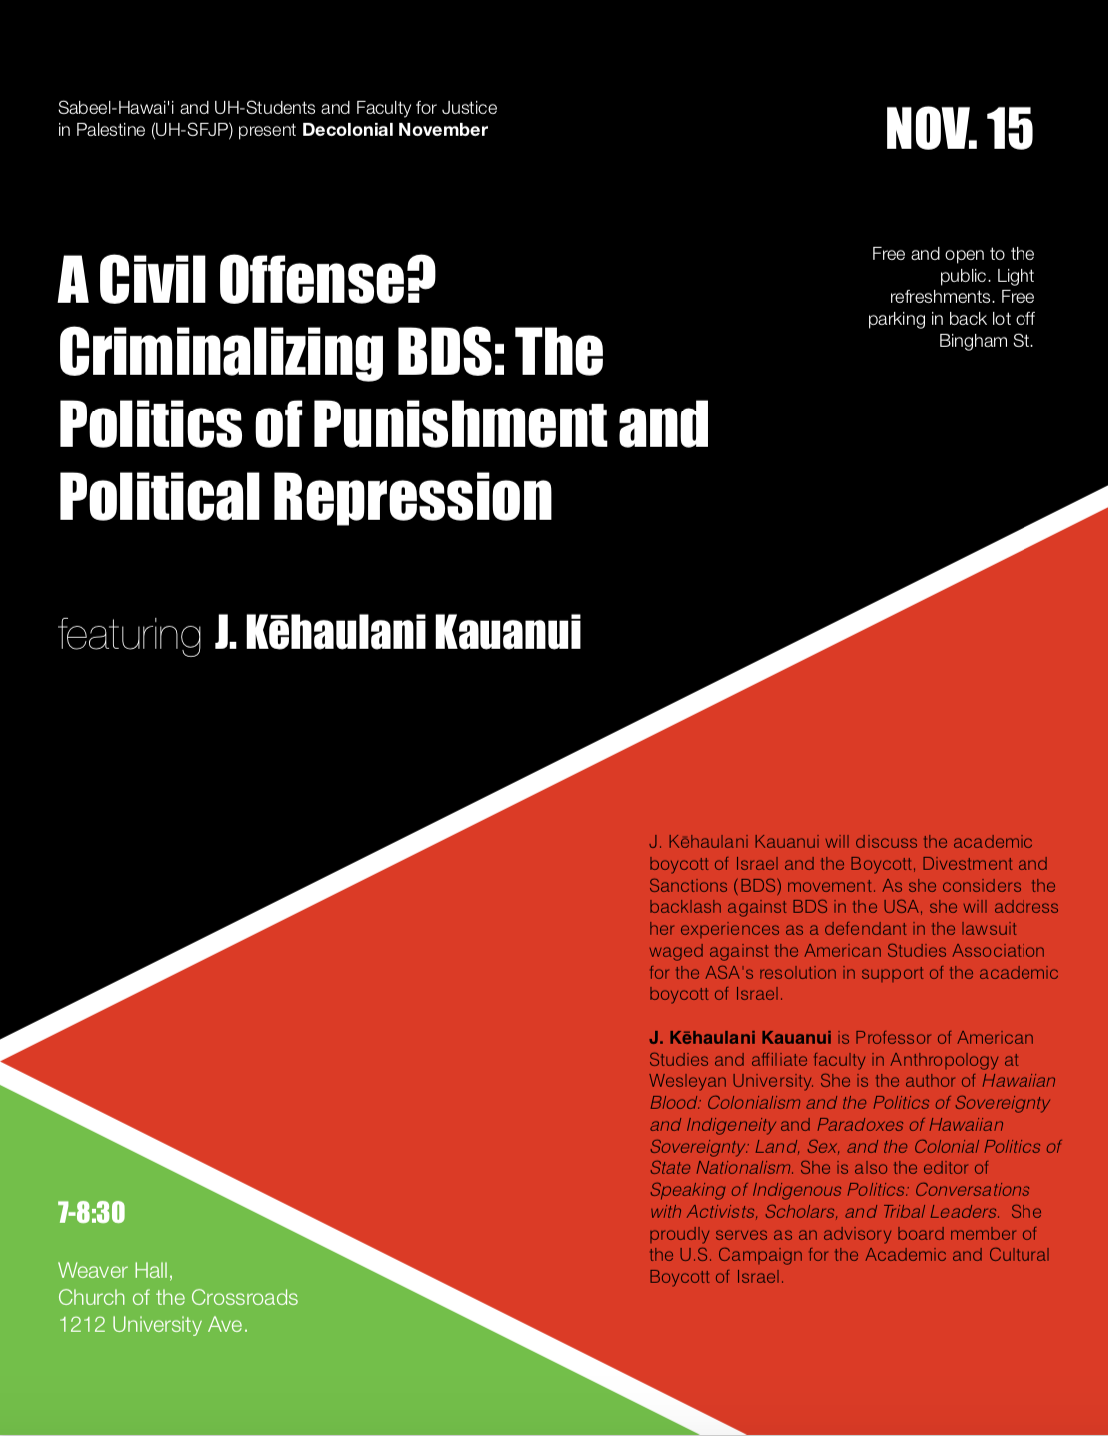 11/15 A Civil Offense? Criminalizing BOS: The Politics of Punishment and Political Repression